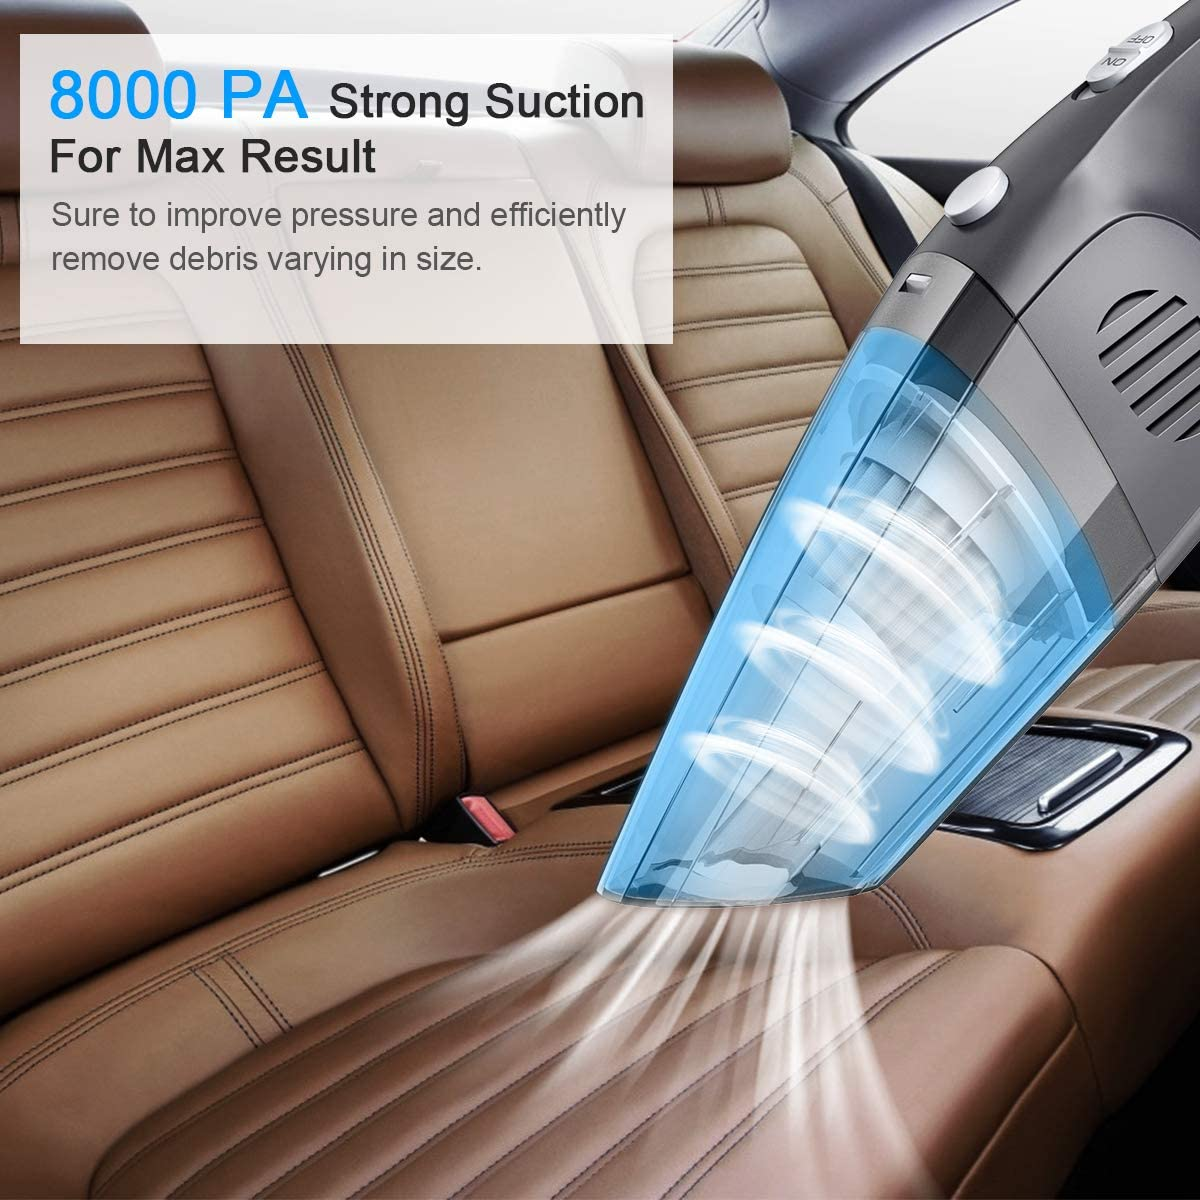 Hand Vacuum Cordless Powerful Suction Lightweight Mini Vacuum Wet Dry Quick Charge Car Vacuum Cleaner for Pet Hair Handheld Vacuum Home Office and Car Cleaning